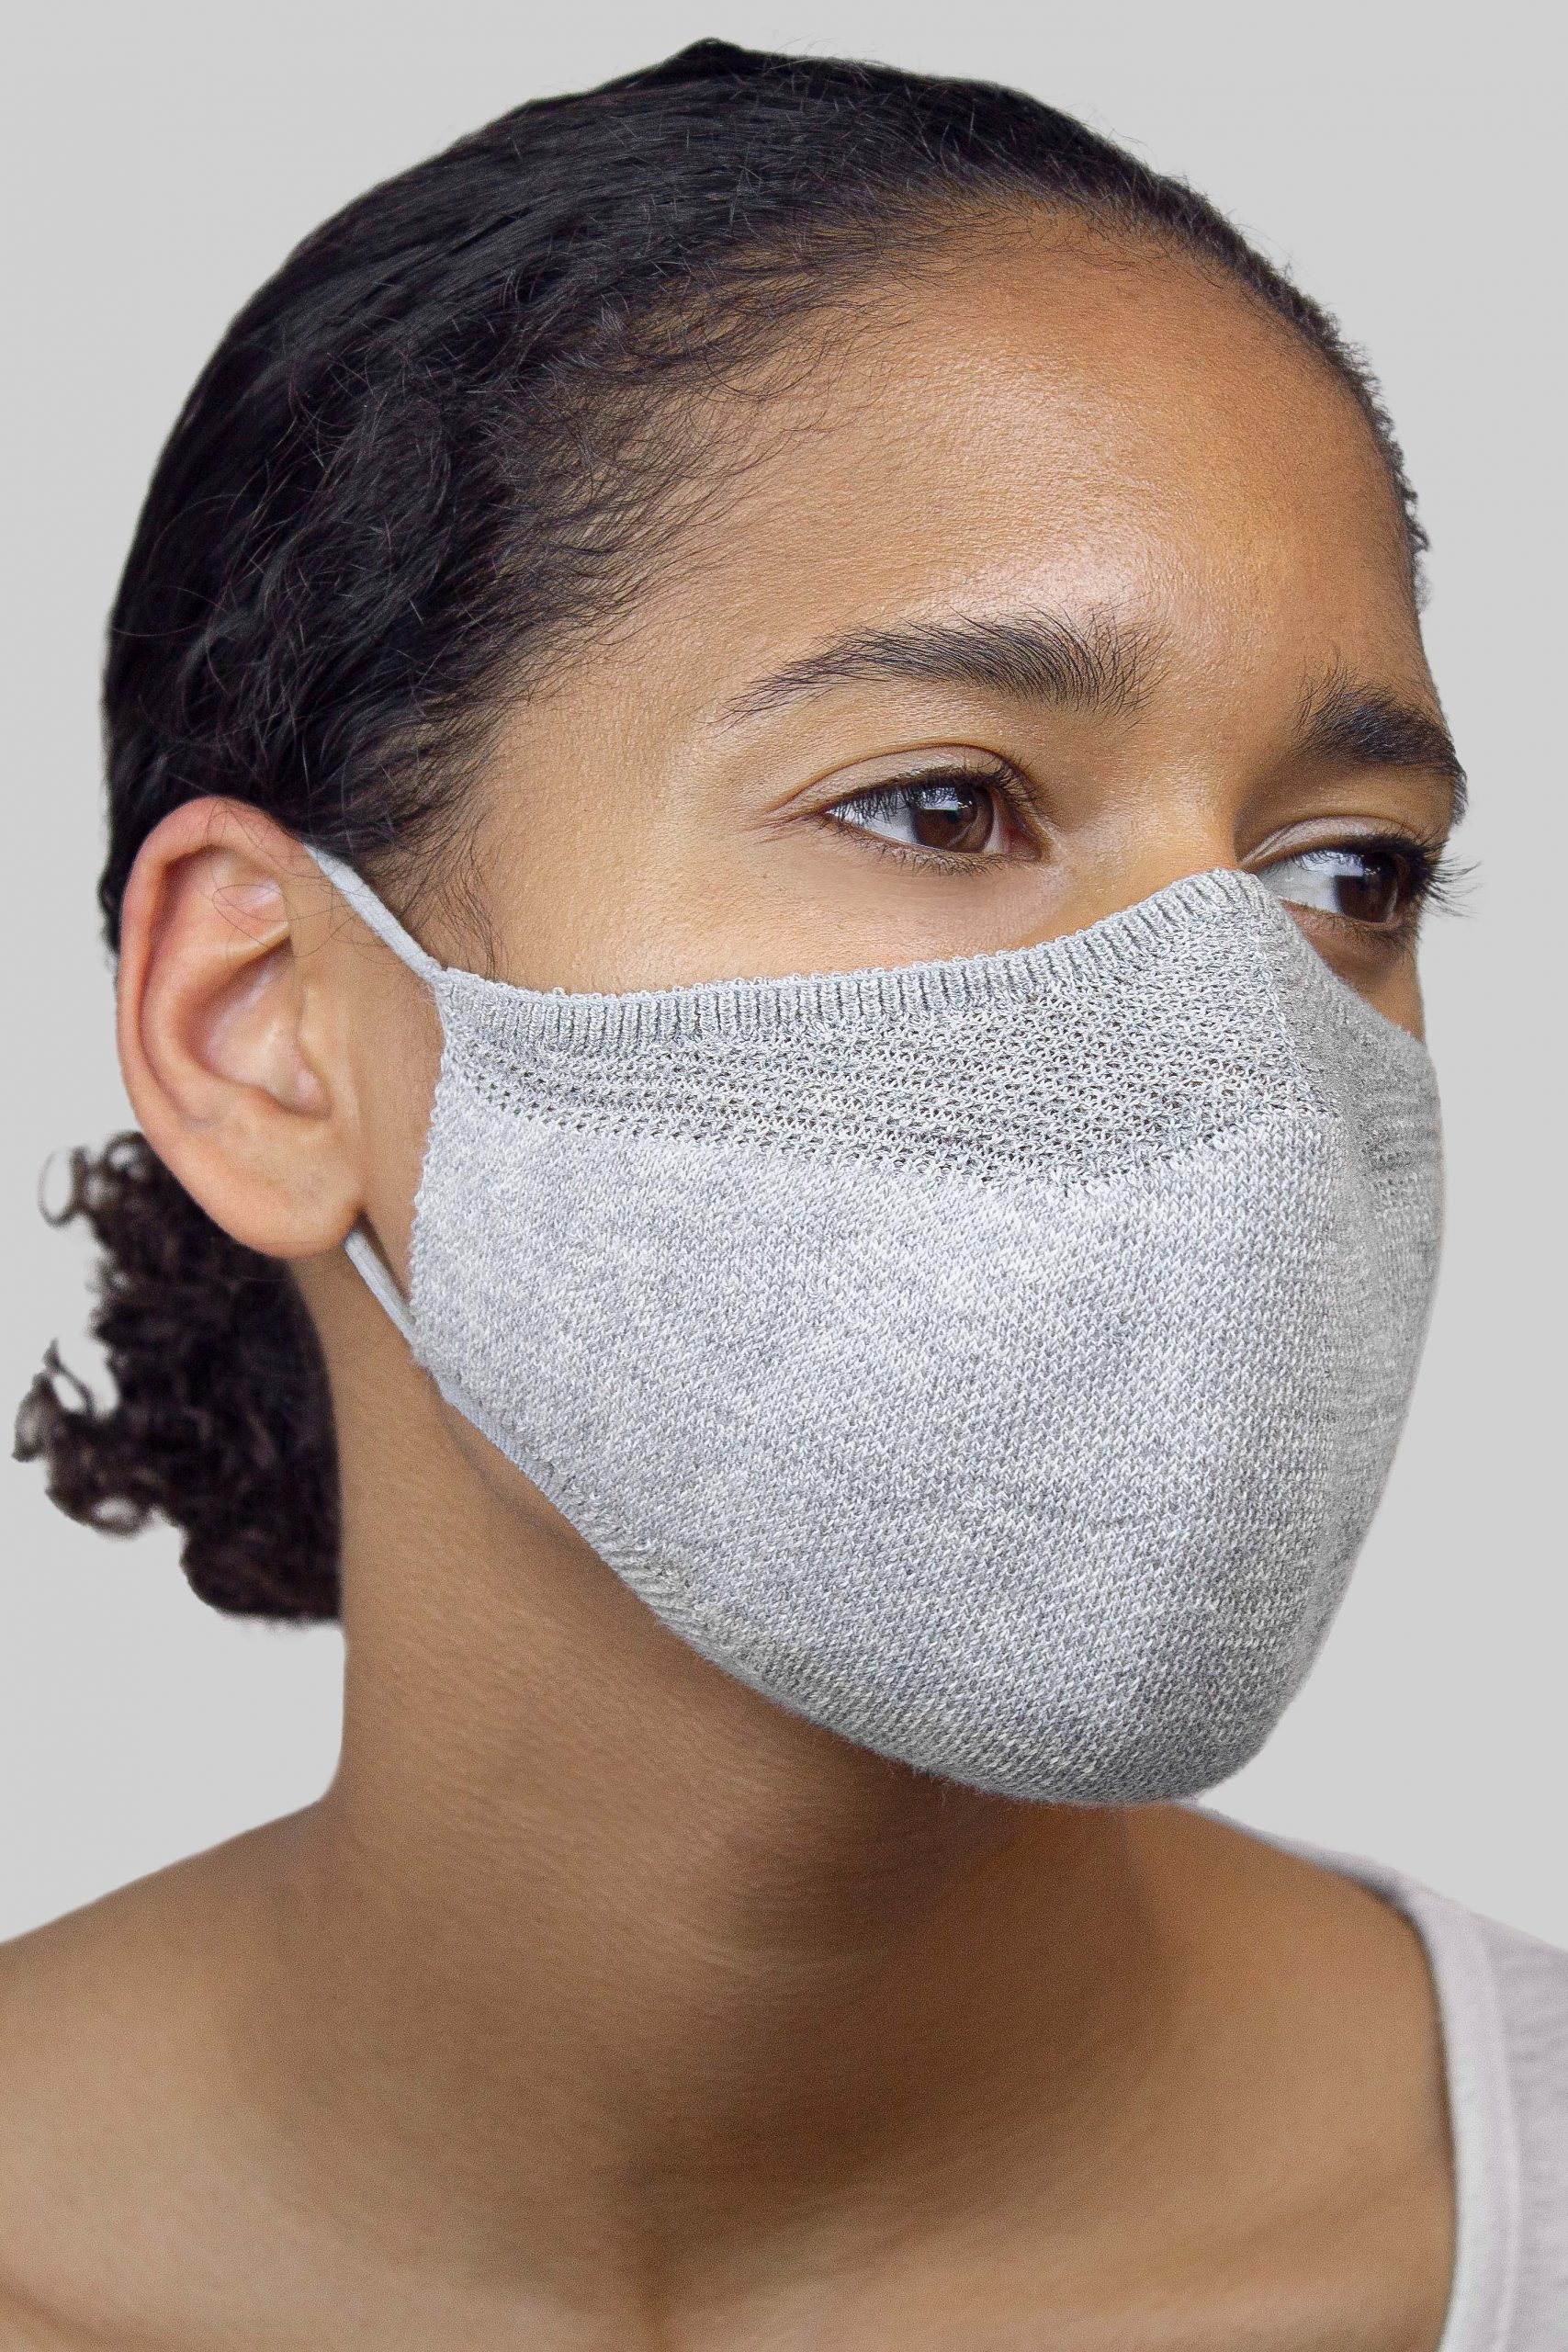 Sustainable 3D Knitted Face Masks Developed By Knitwear Lab